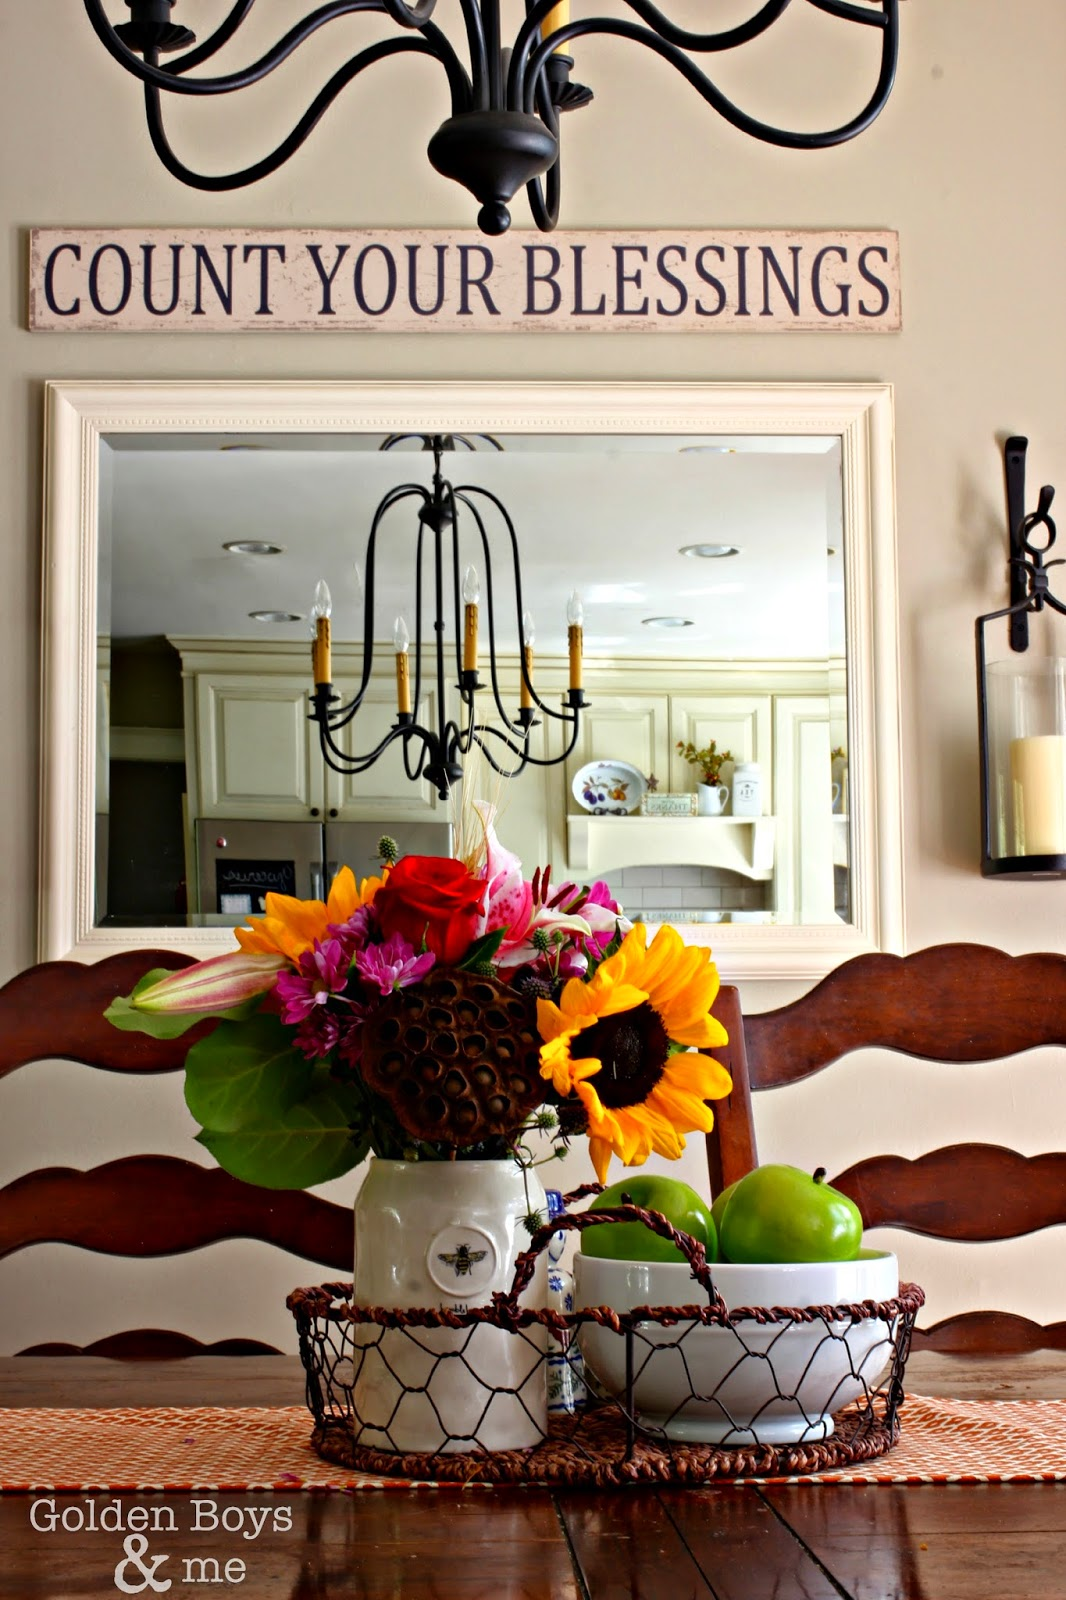 Fall decor in dining room with count your blessings HomeGoods sign-www.goldenboysandme.com